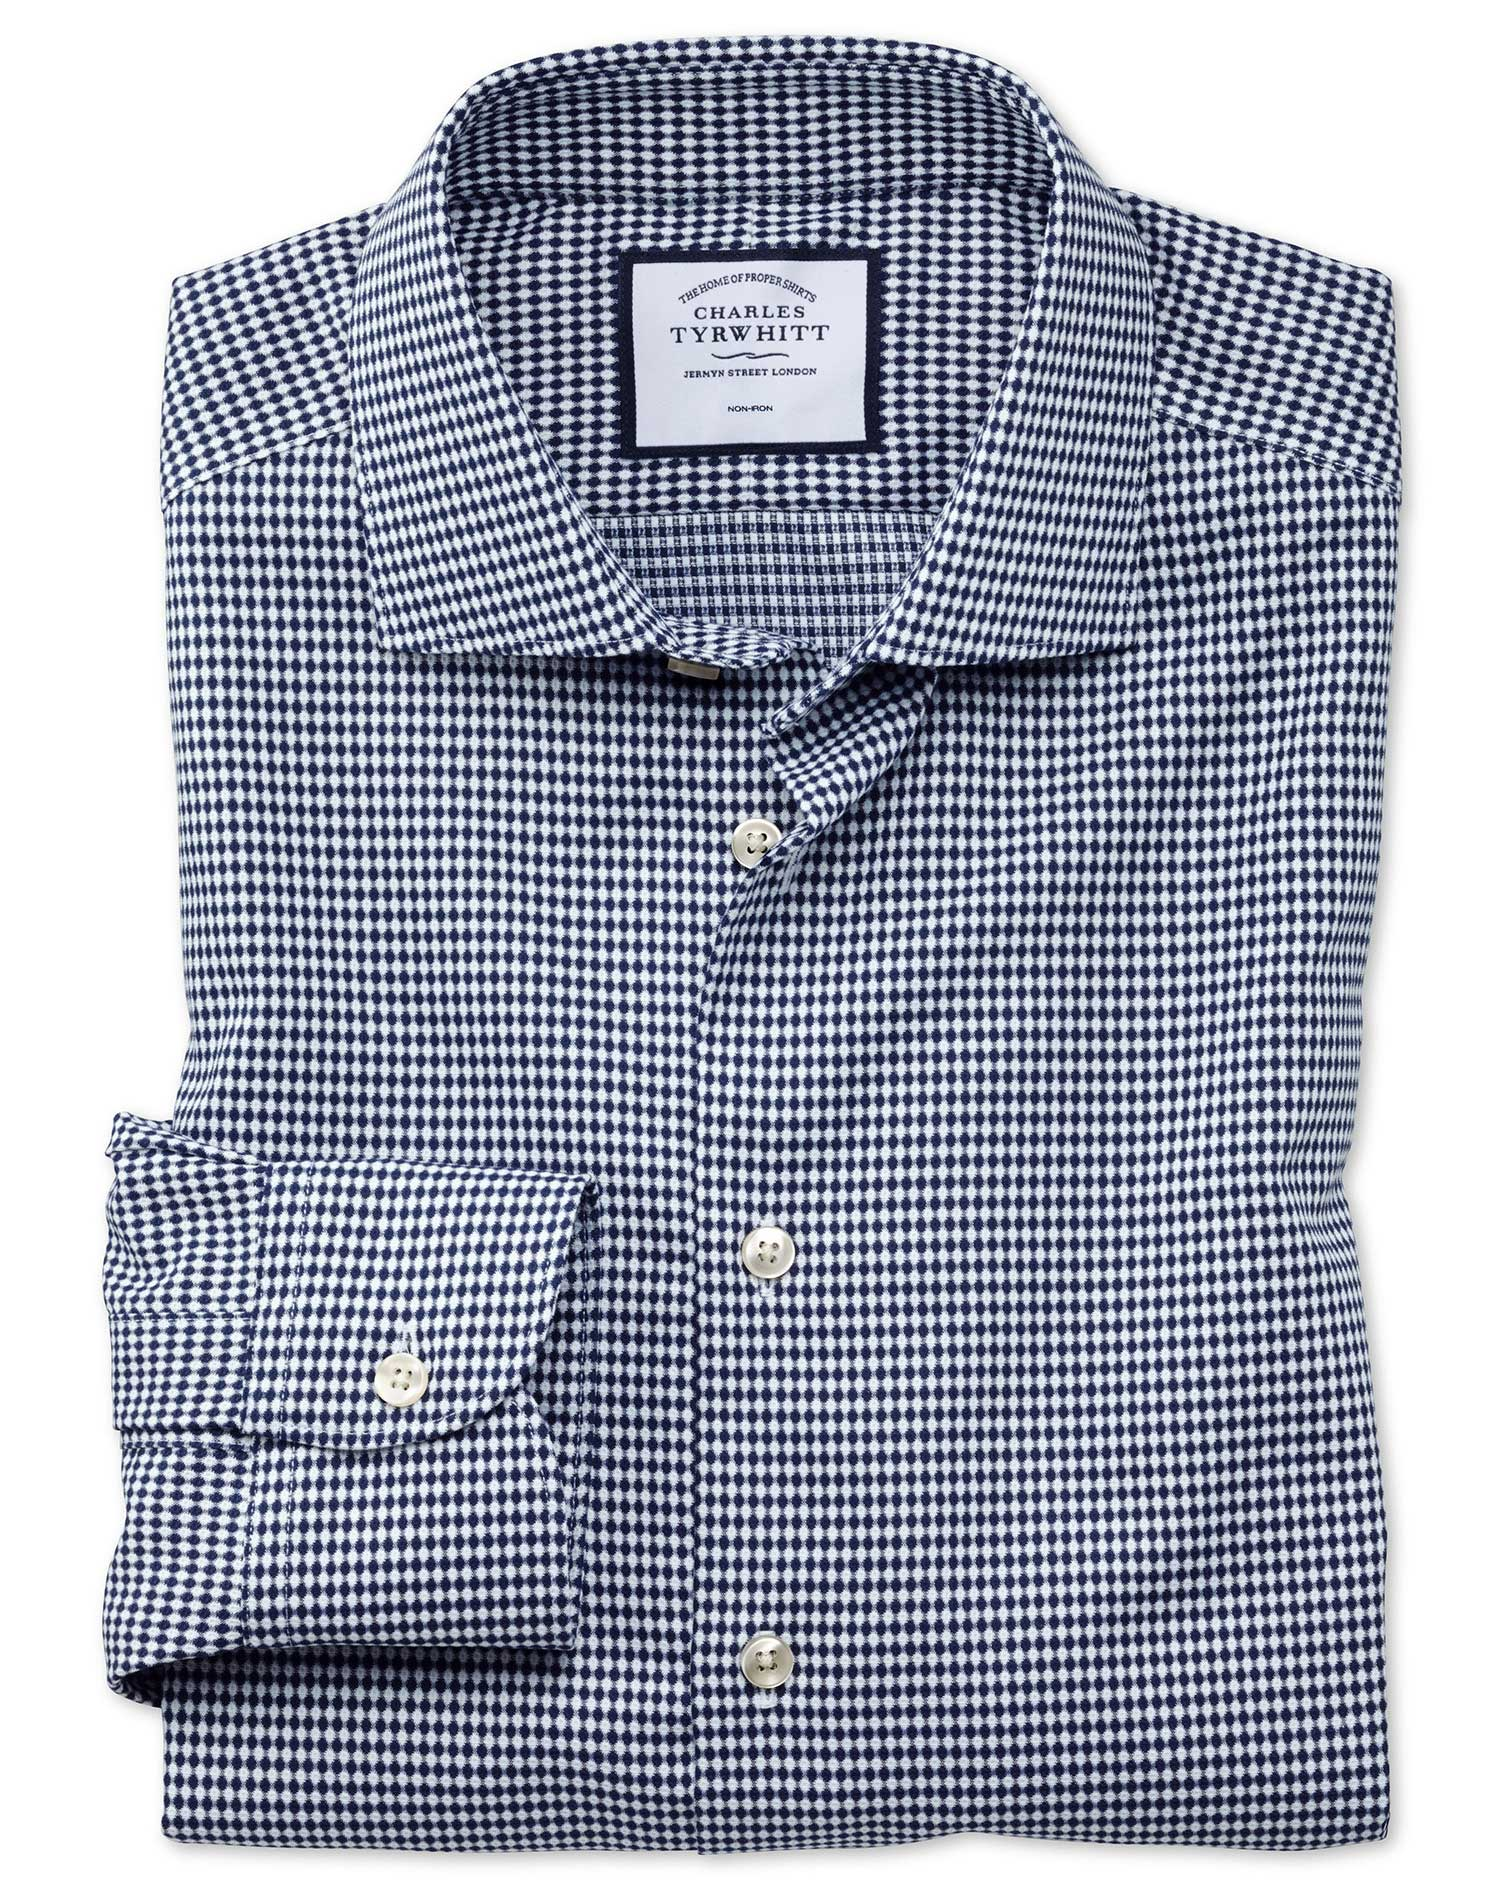 Extra Slim Fit Business Casual Non-Iron Navy Oval Dobby Cotton Formal Shirt Single Cuff Size 15/35 b